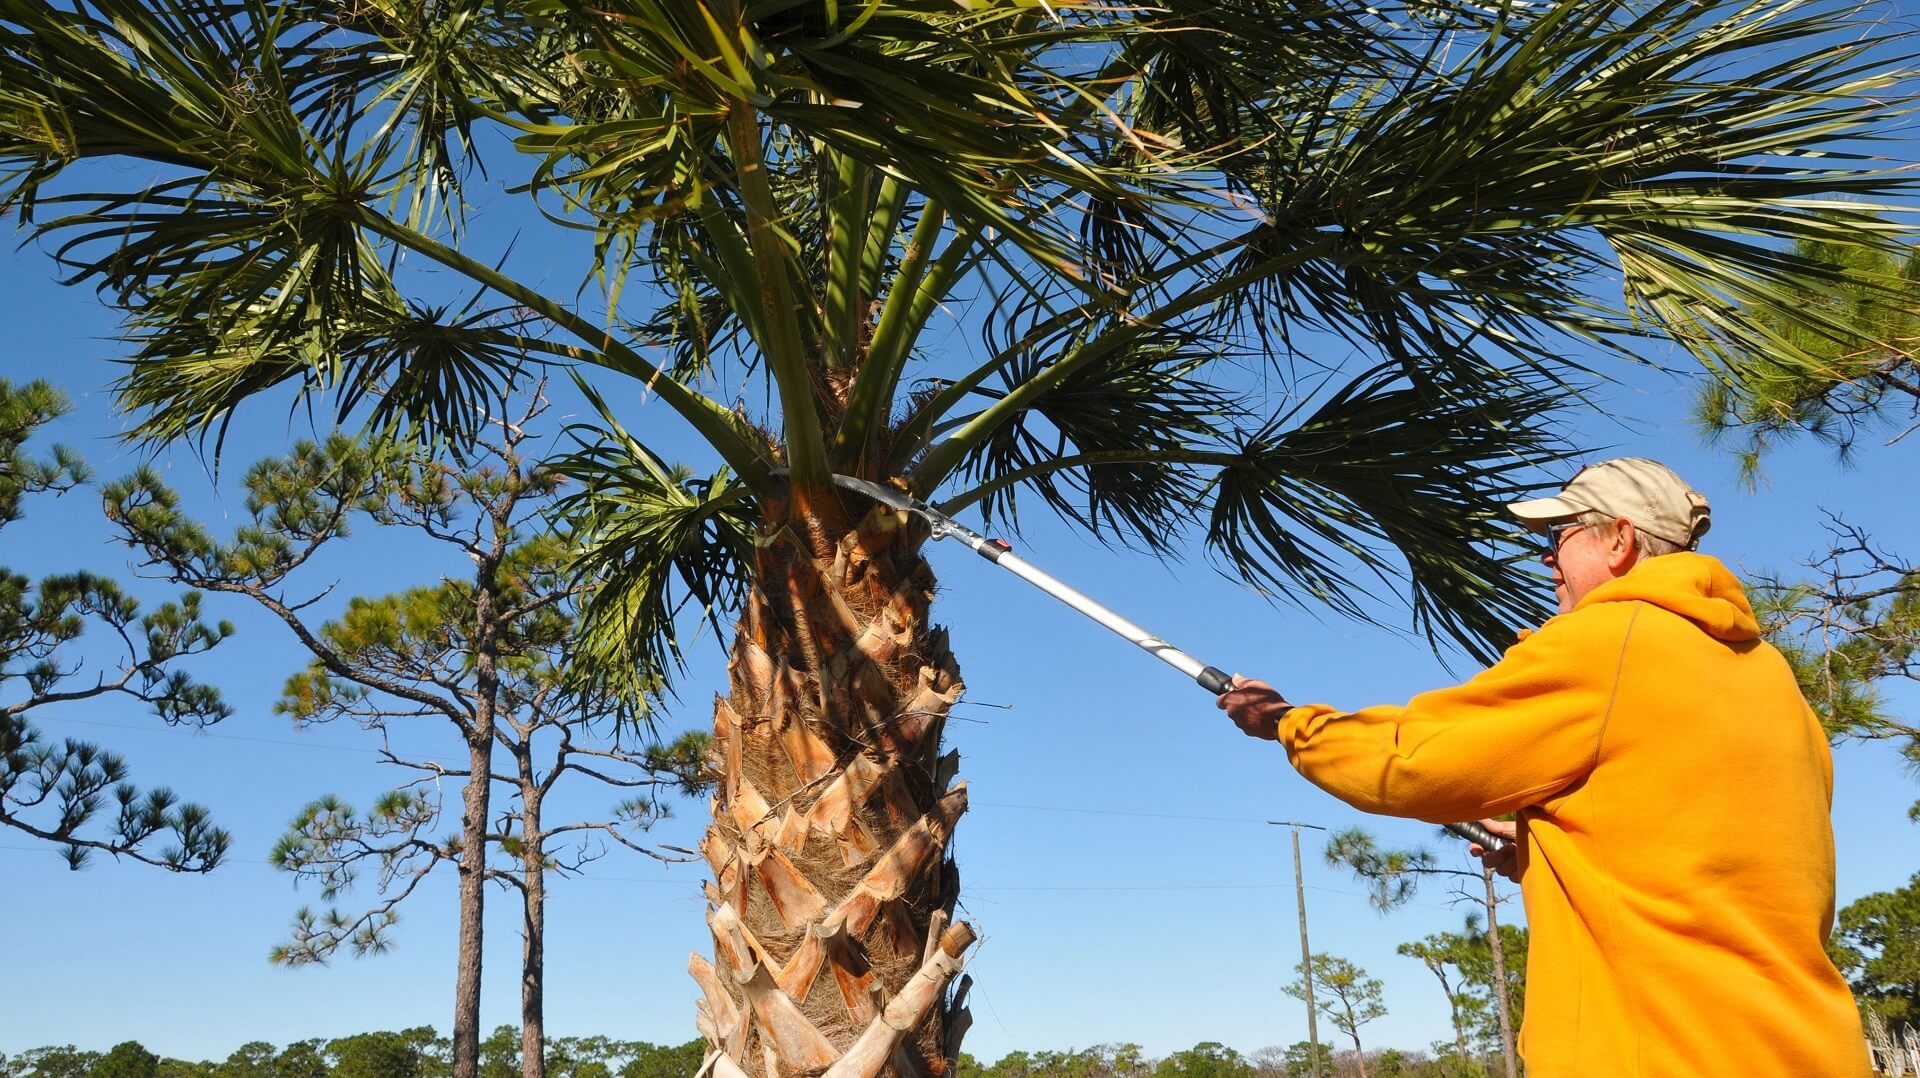 Willard-Springfield Tree Trimming and Stump Grinding Services-We Offer Tree Trimming Services, Tree Removal, Tree Pruning, Tree Cutting, Residential and Commercial Tree Trimming Services, Storm Damage, Emergency Tree Removal, Land Clearing, Tree Companies, Tree Care Service, Stump Grinding, and we're the Best Tree Trimming Company Near You Guaranteed!